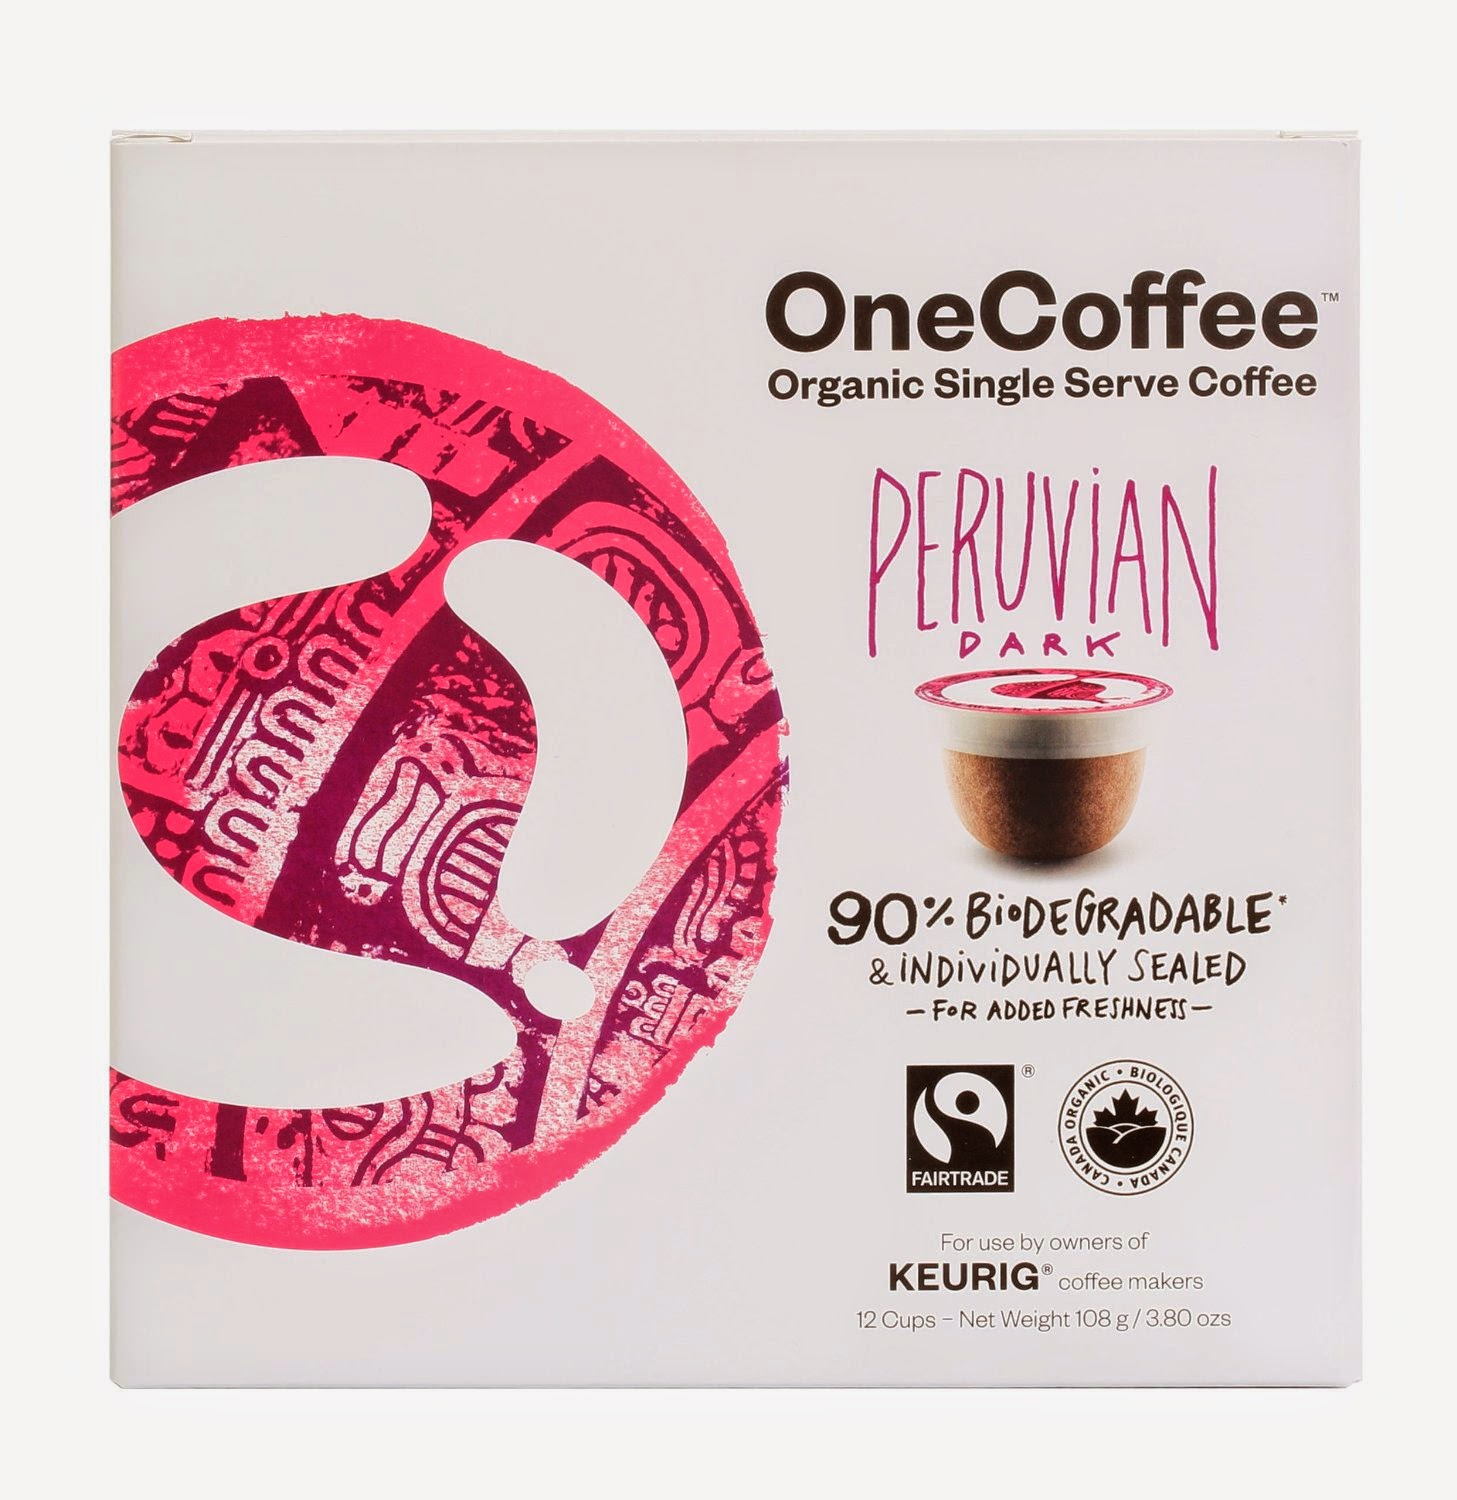 Biodegradable organic coffee